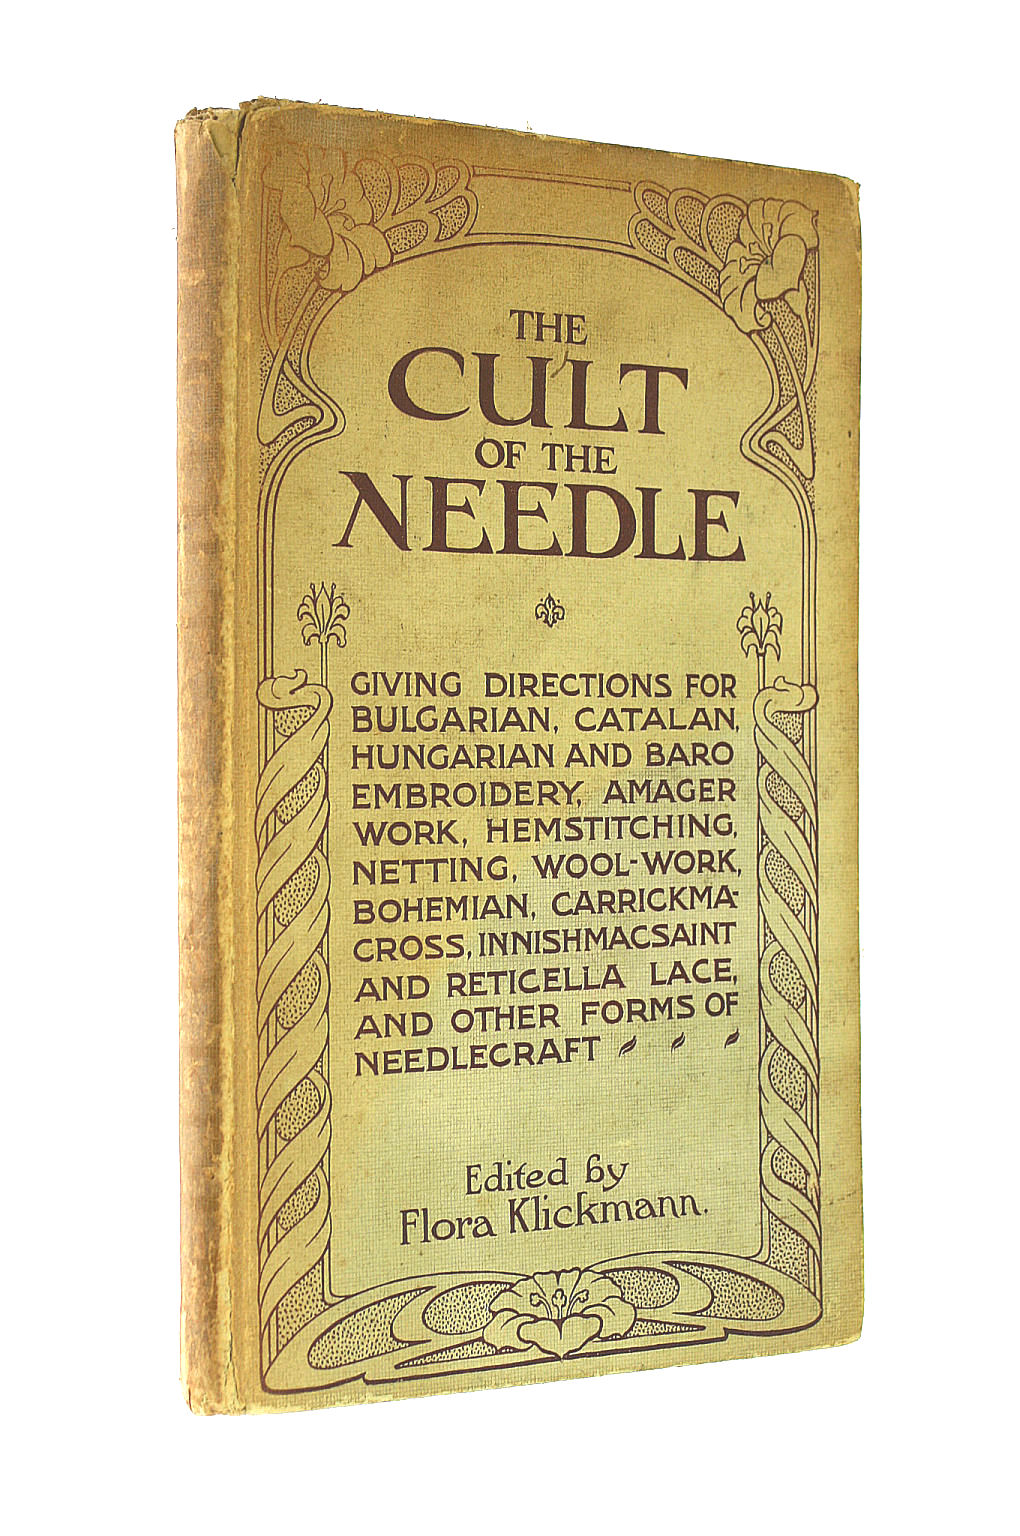 Image for The Cult of the Needle. Edited by F. Klickmann. With illustrations